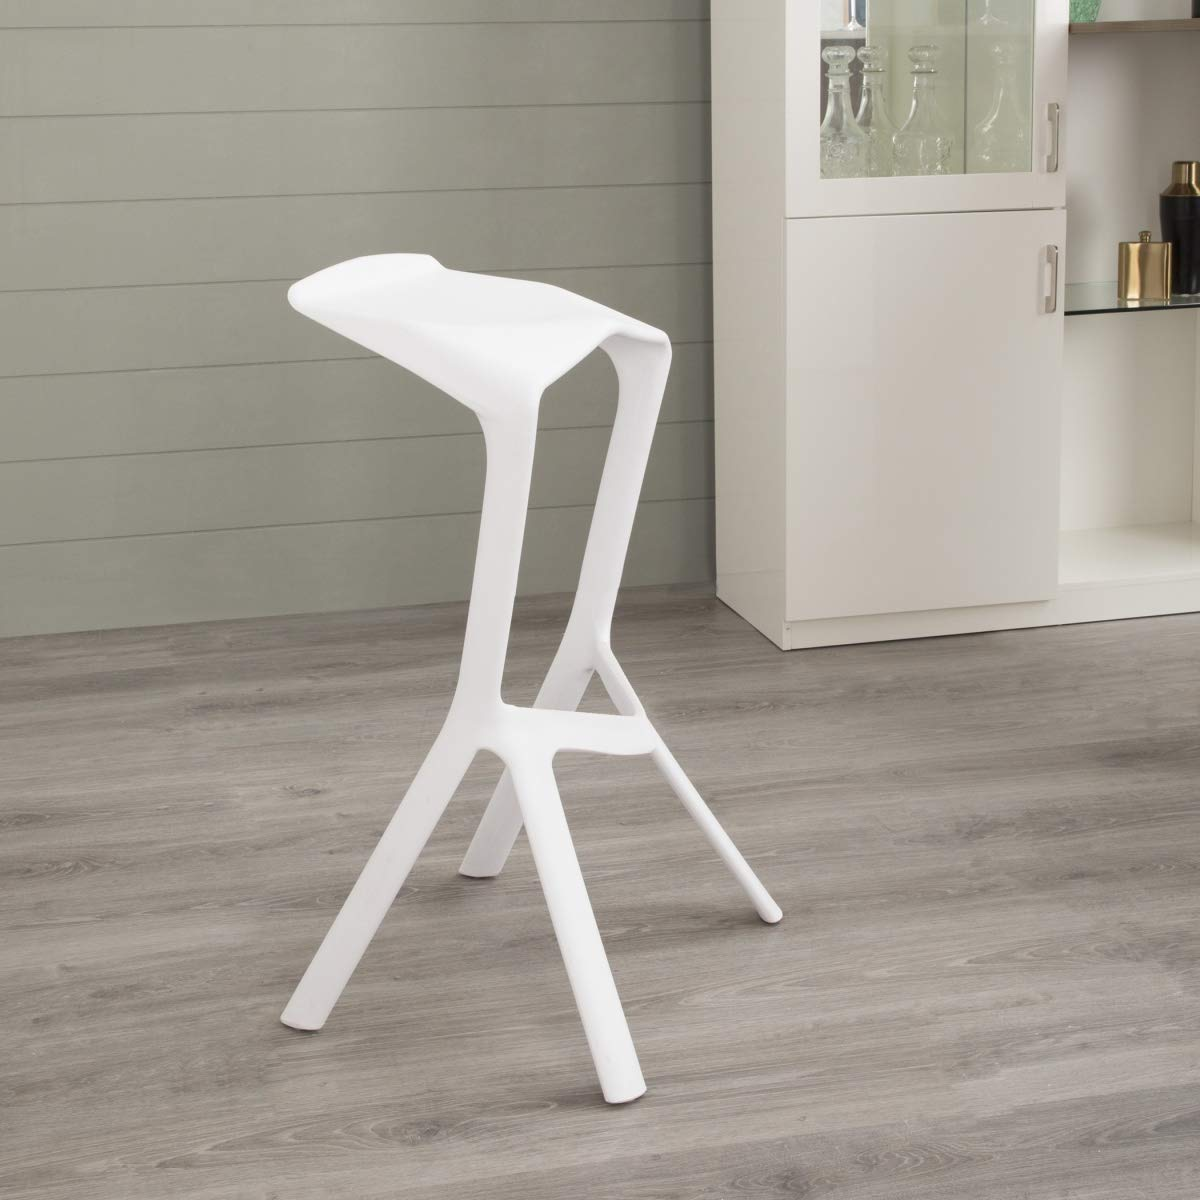 Home Centre Perry Bar Chair - White: Amazon.in: Home & Kitchen